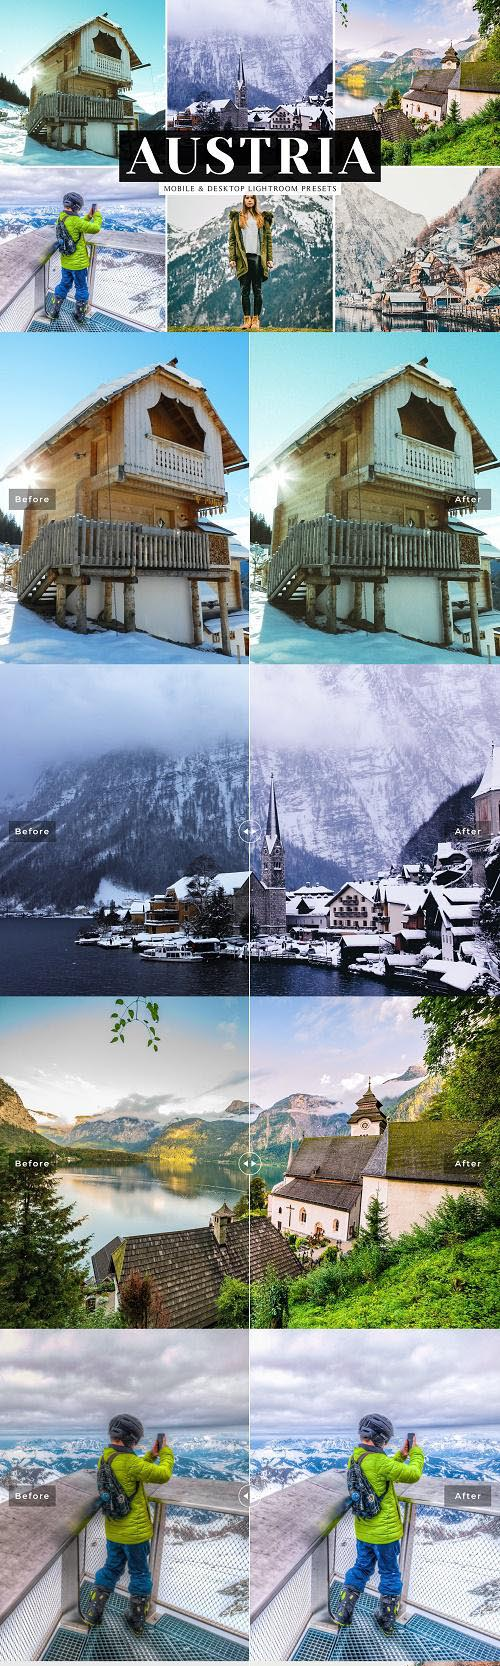 Austria Lightroom Presets Pack - 3874972